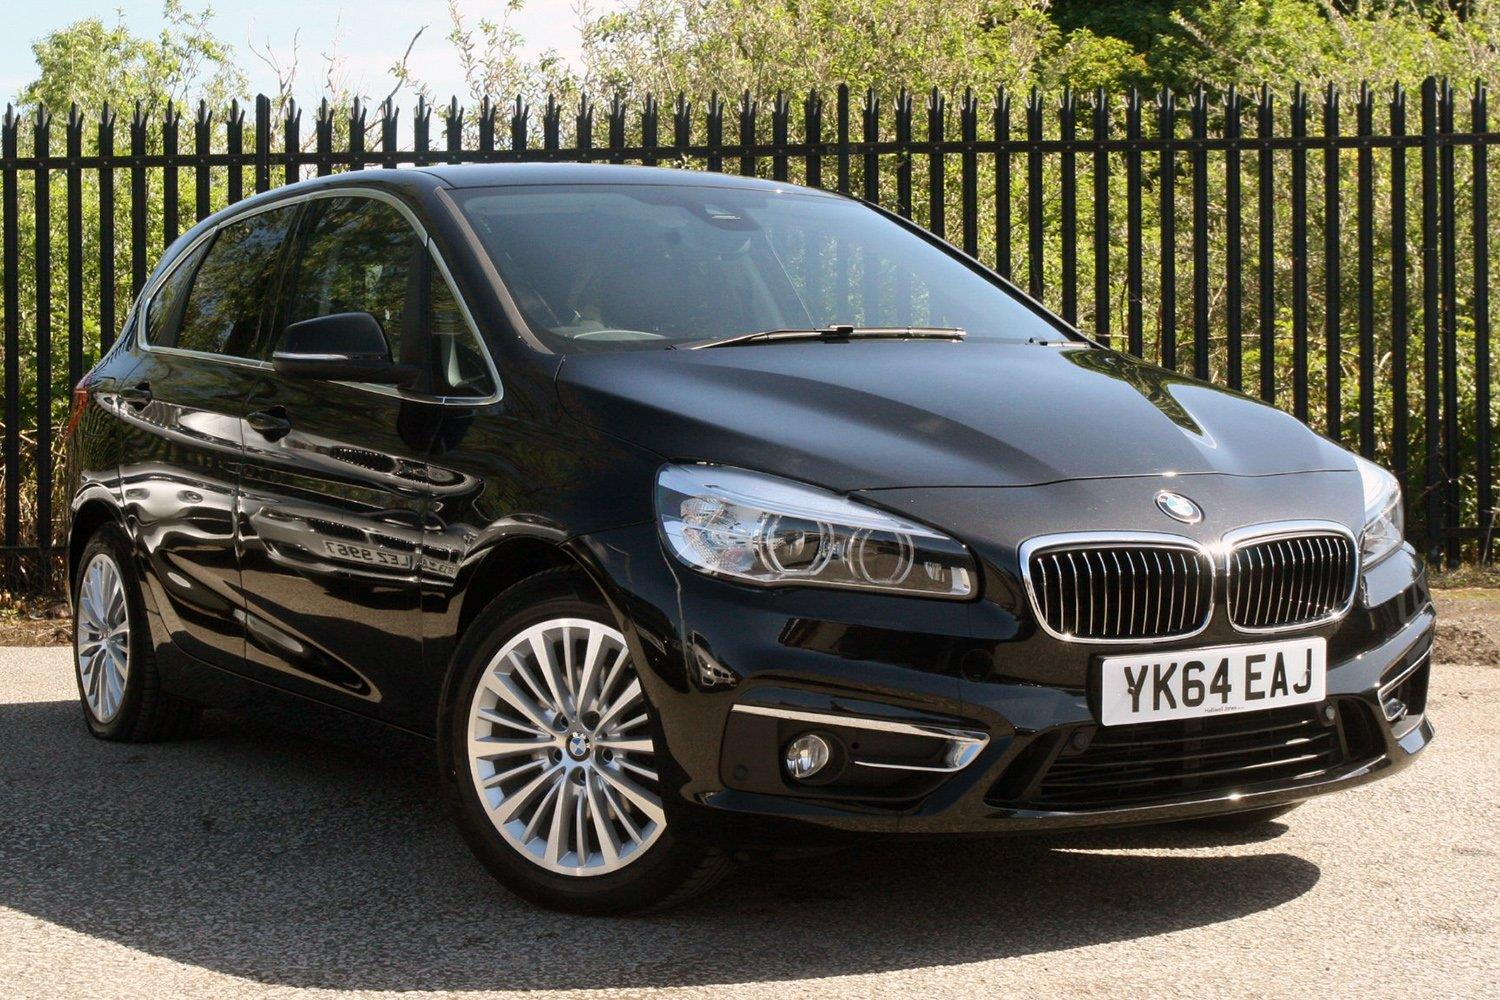 BMW 2 Series Active Tourer 5-Door YK64EAJ - Image 6